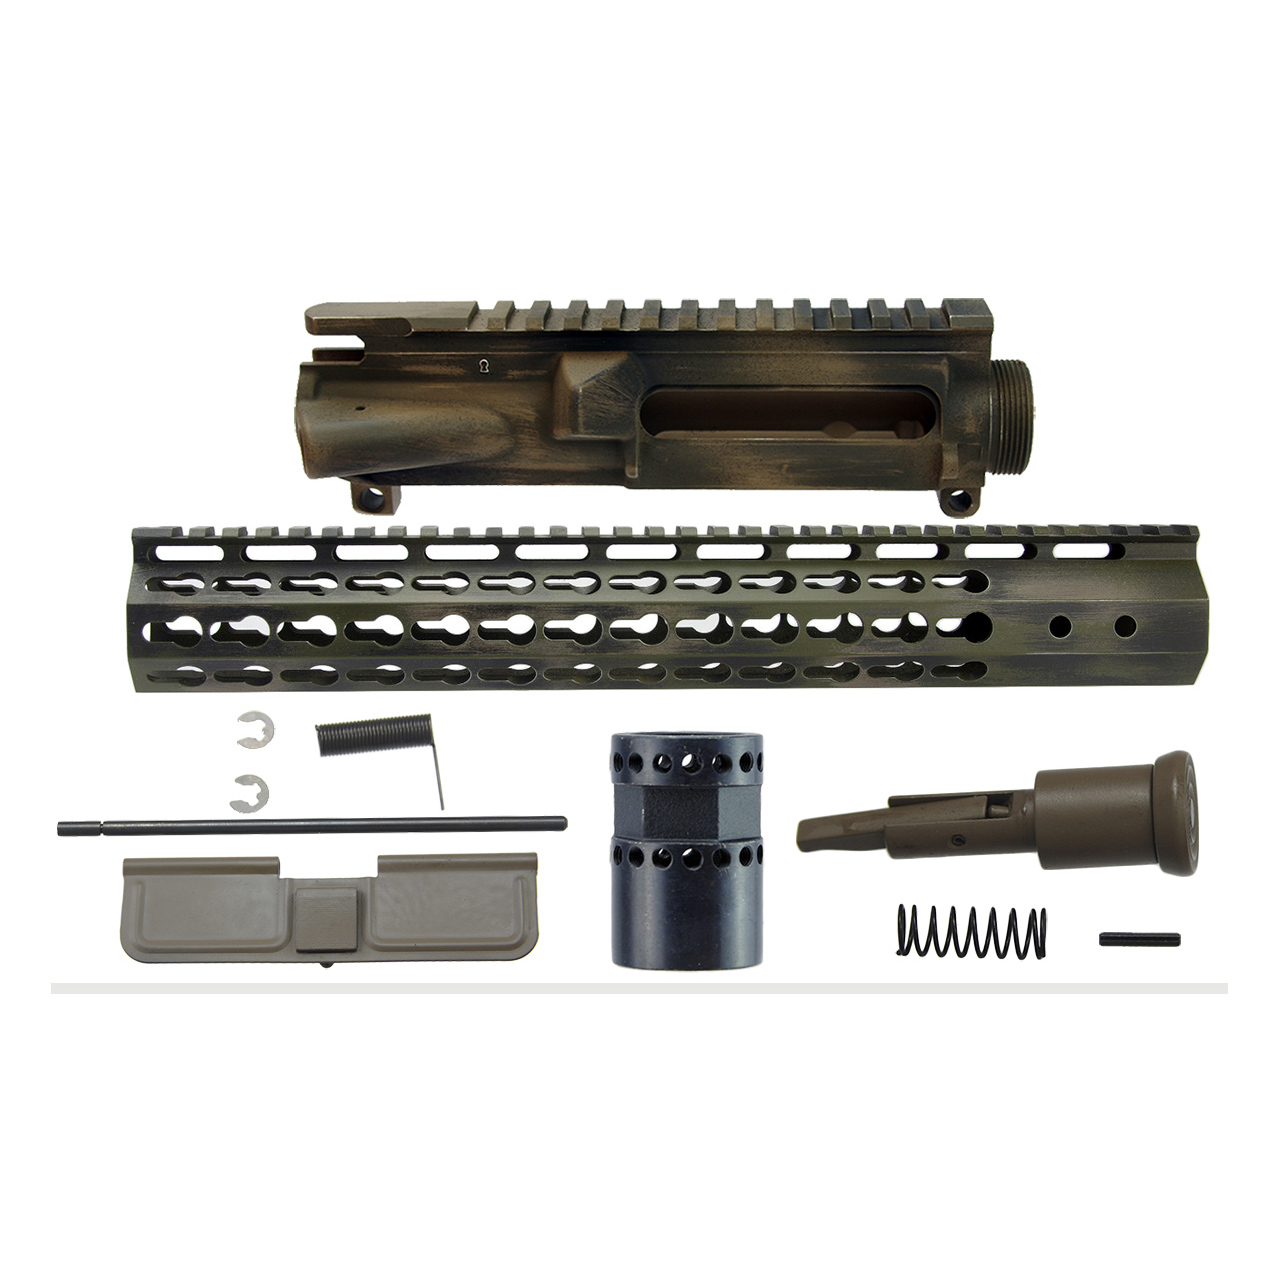 AR15 7 Sided keymod upper receiver Kit, Battle Worn camouflage cerakote